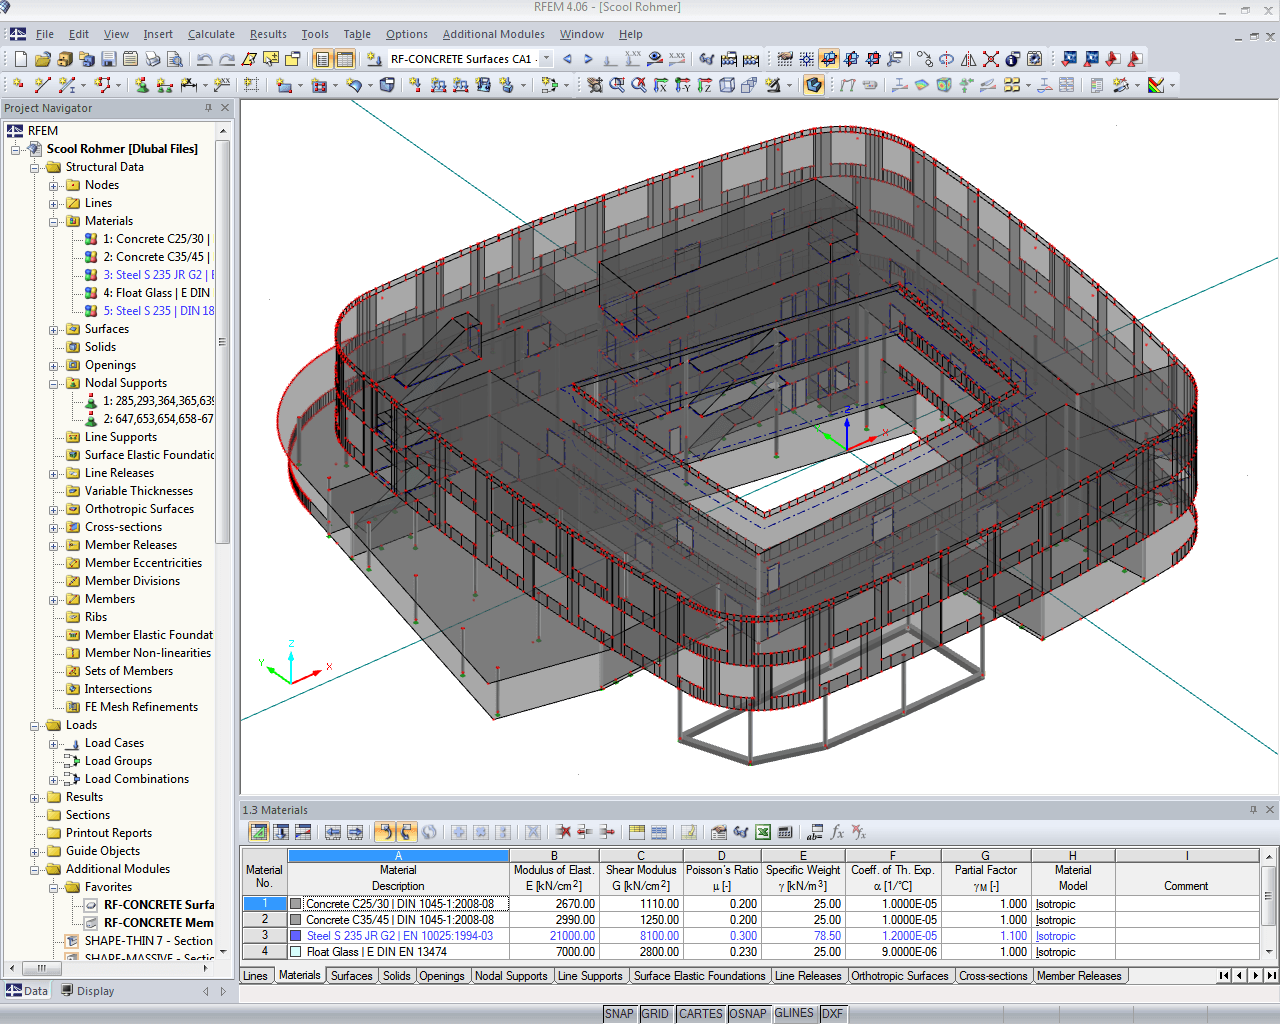 Entire analysis model of school building in RFEM (© Rohmer)